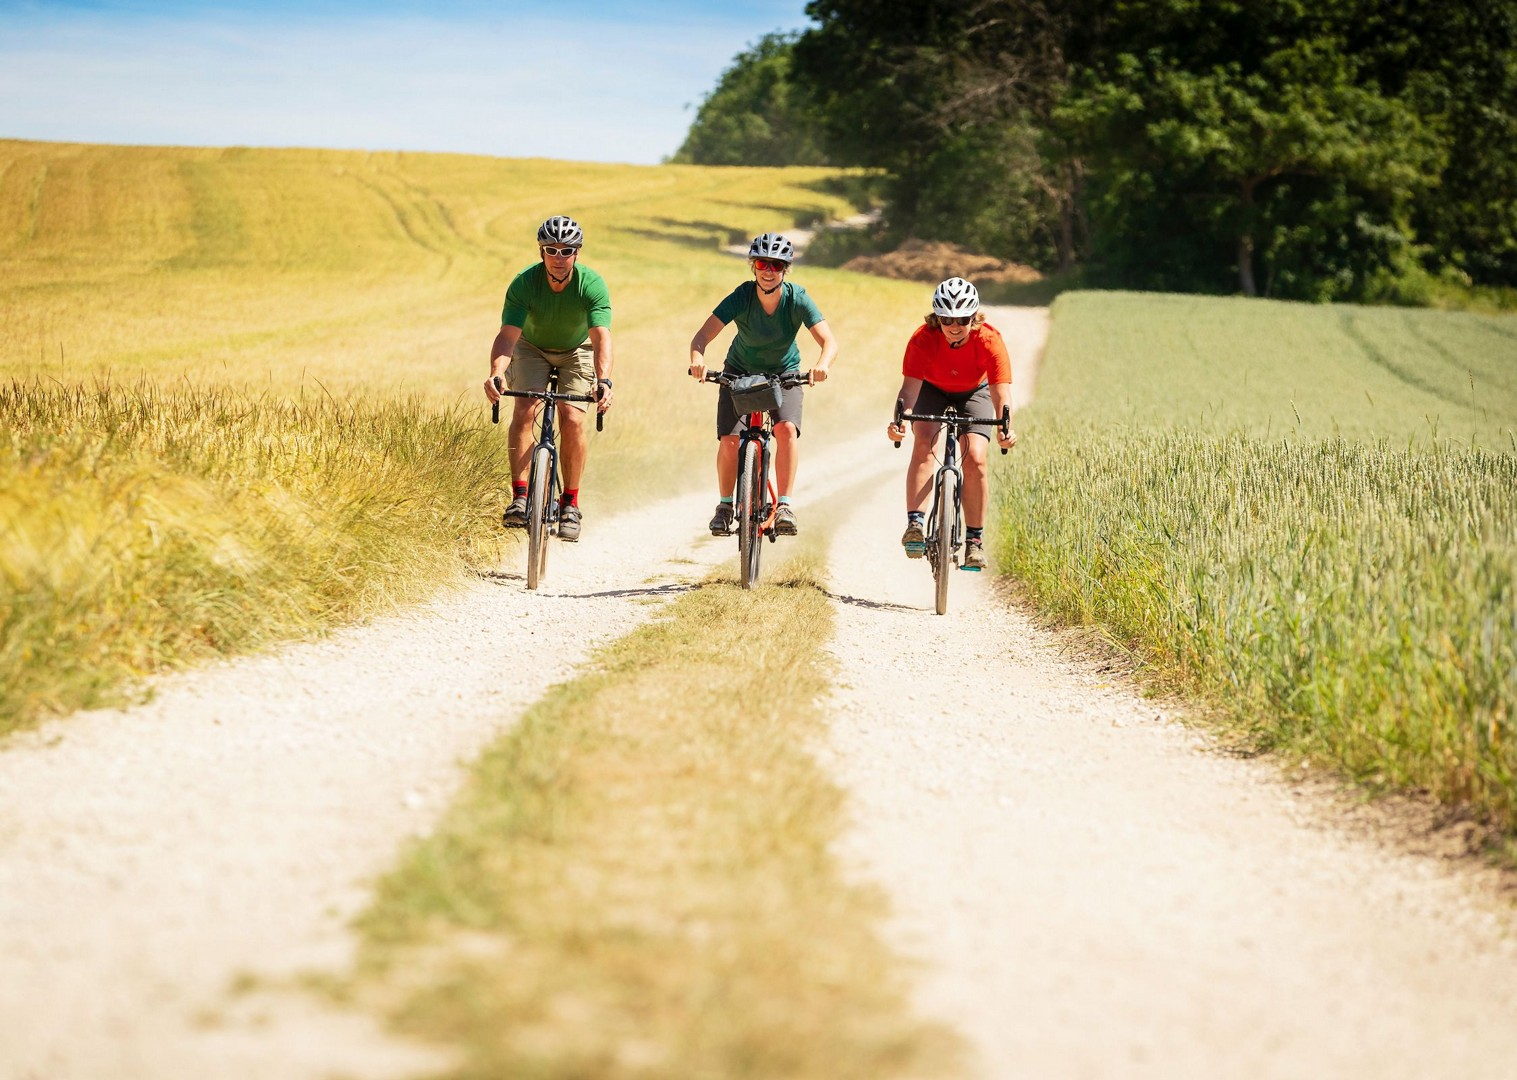 cycling-only-tracks-uk-yorkshire-countryside.jpg - NEW! UK - Yorkshire Wolds - Leisure Cycling